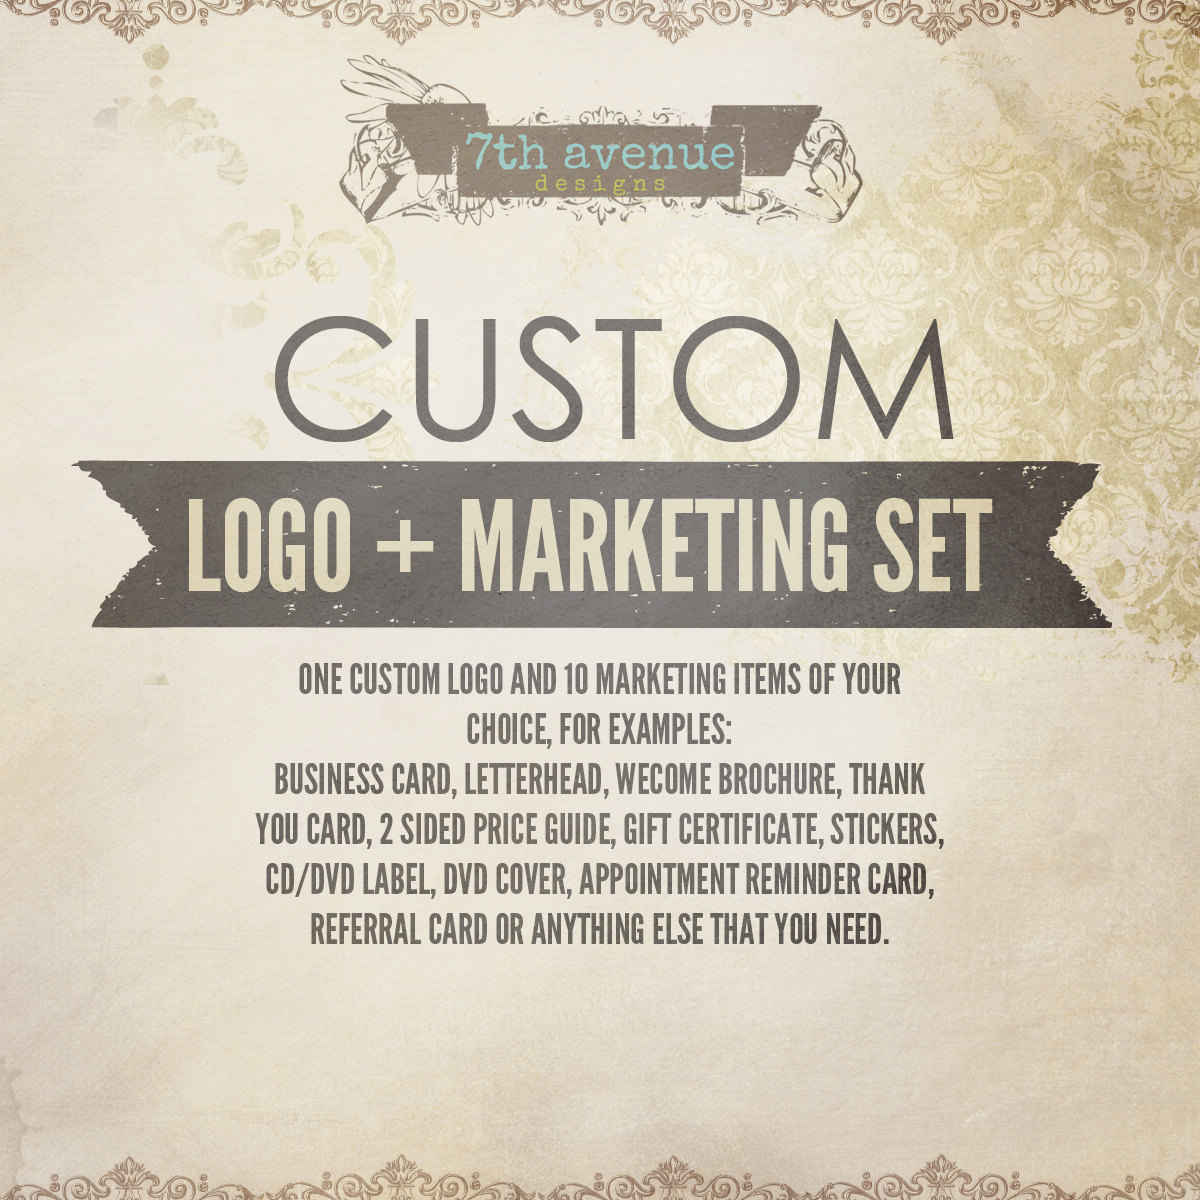 Professional Custom Logo + Marketing Set